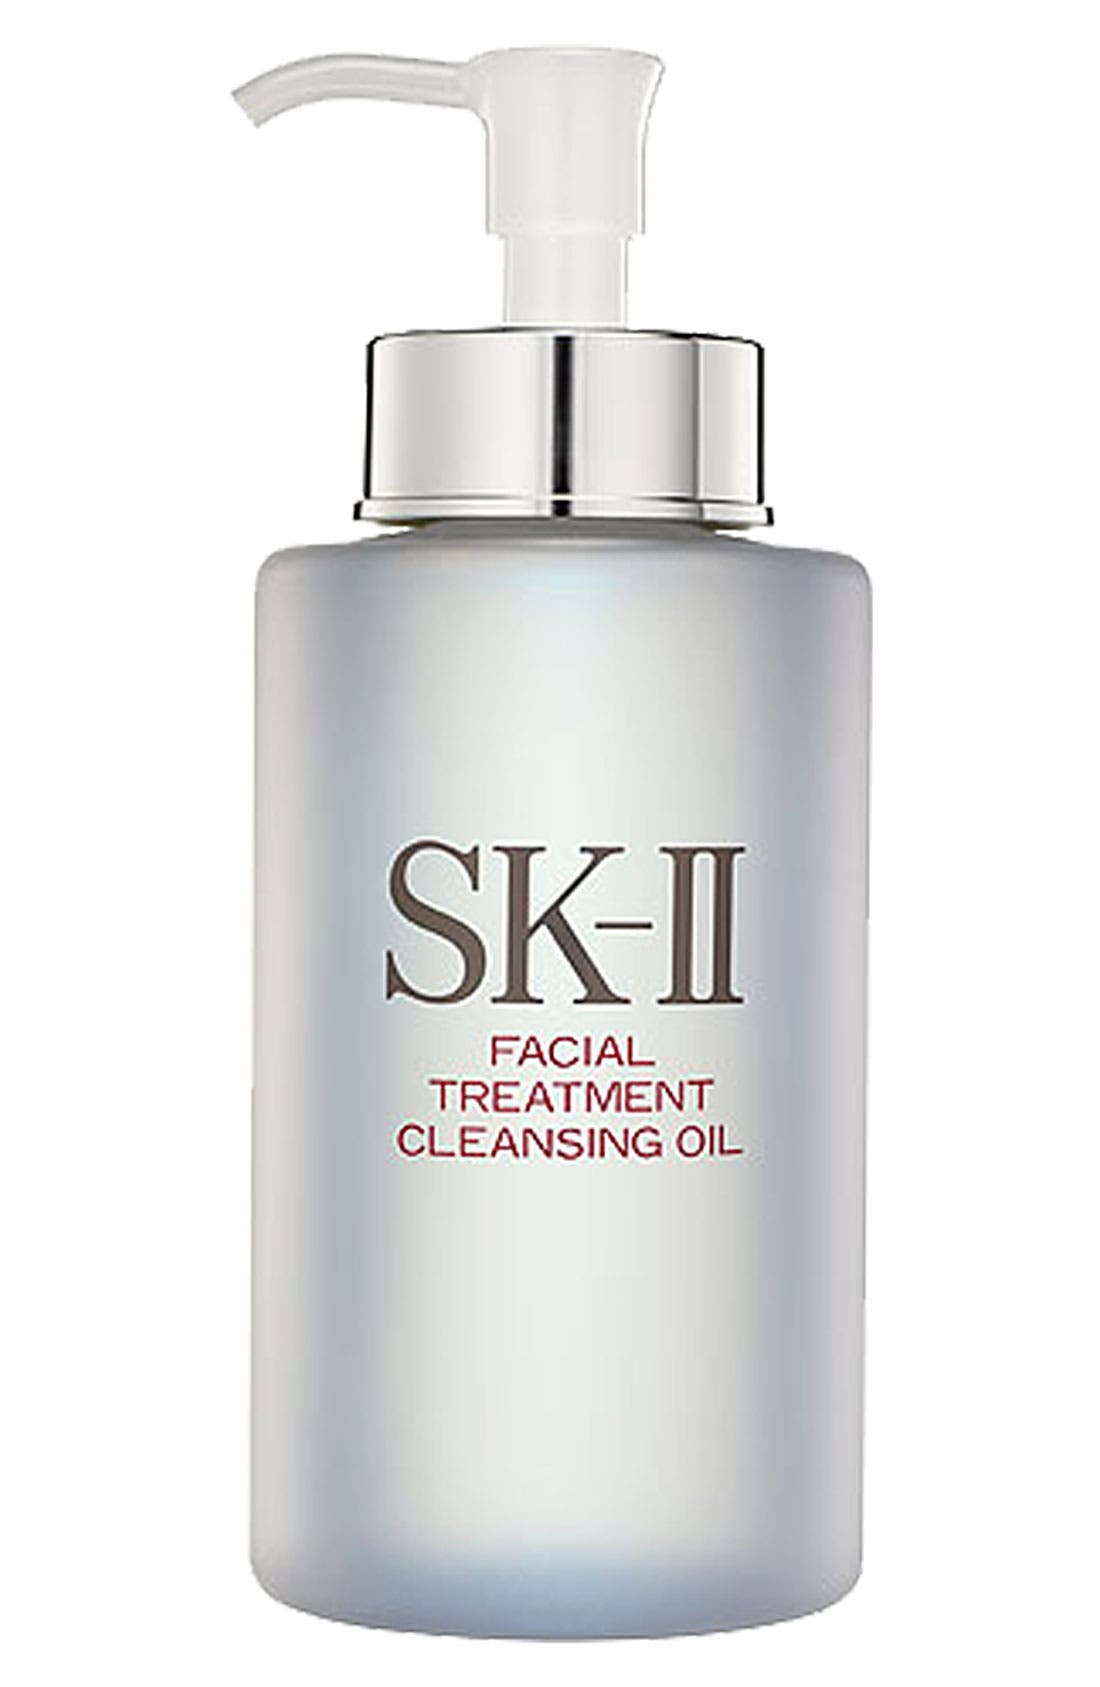 SK-II Facial Treatment Cleansing Oil